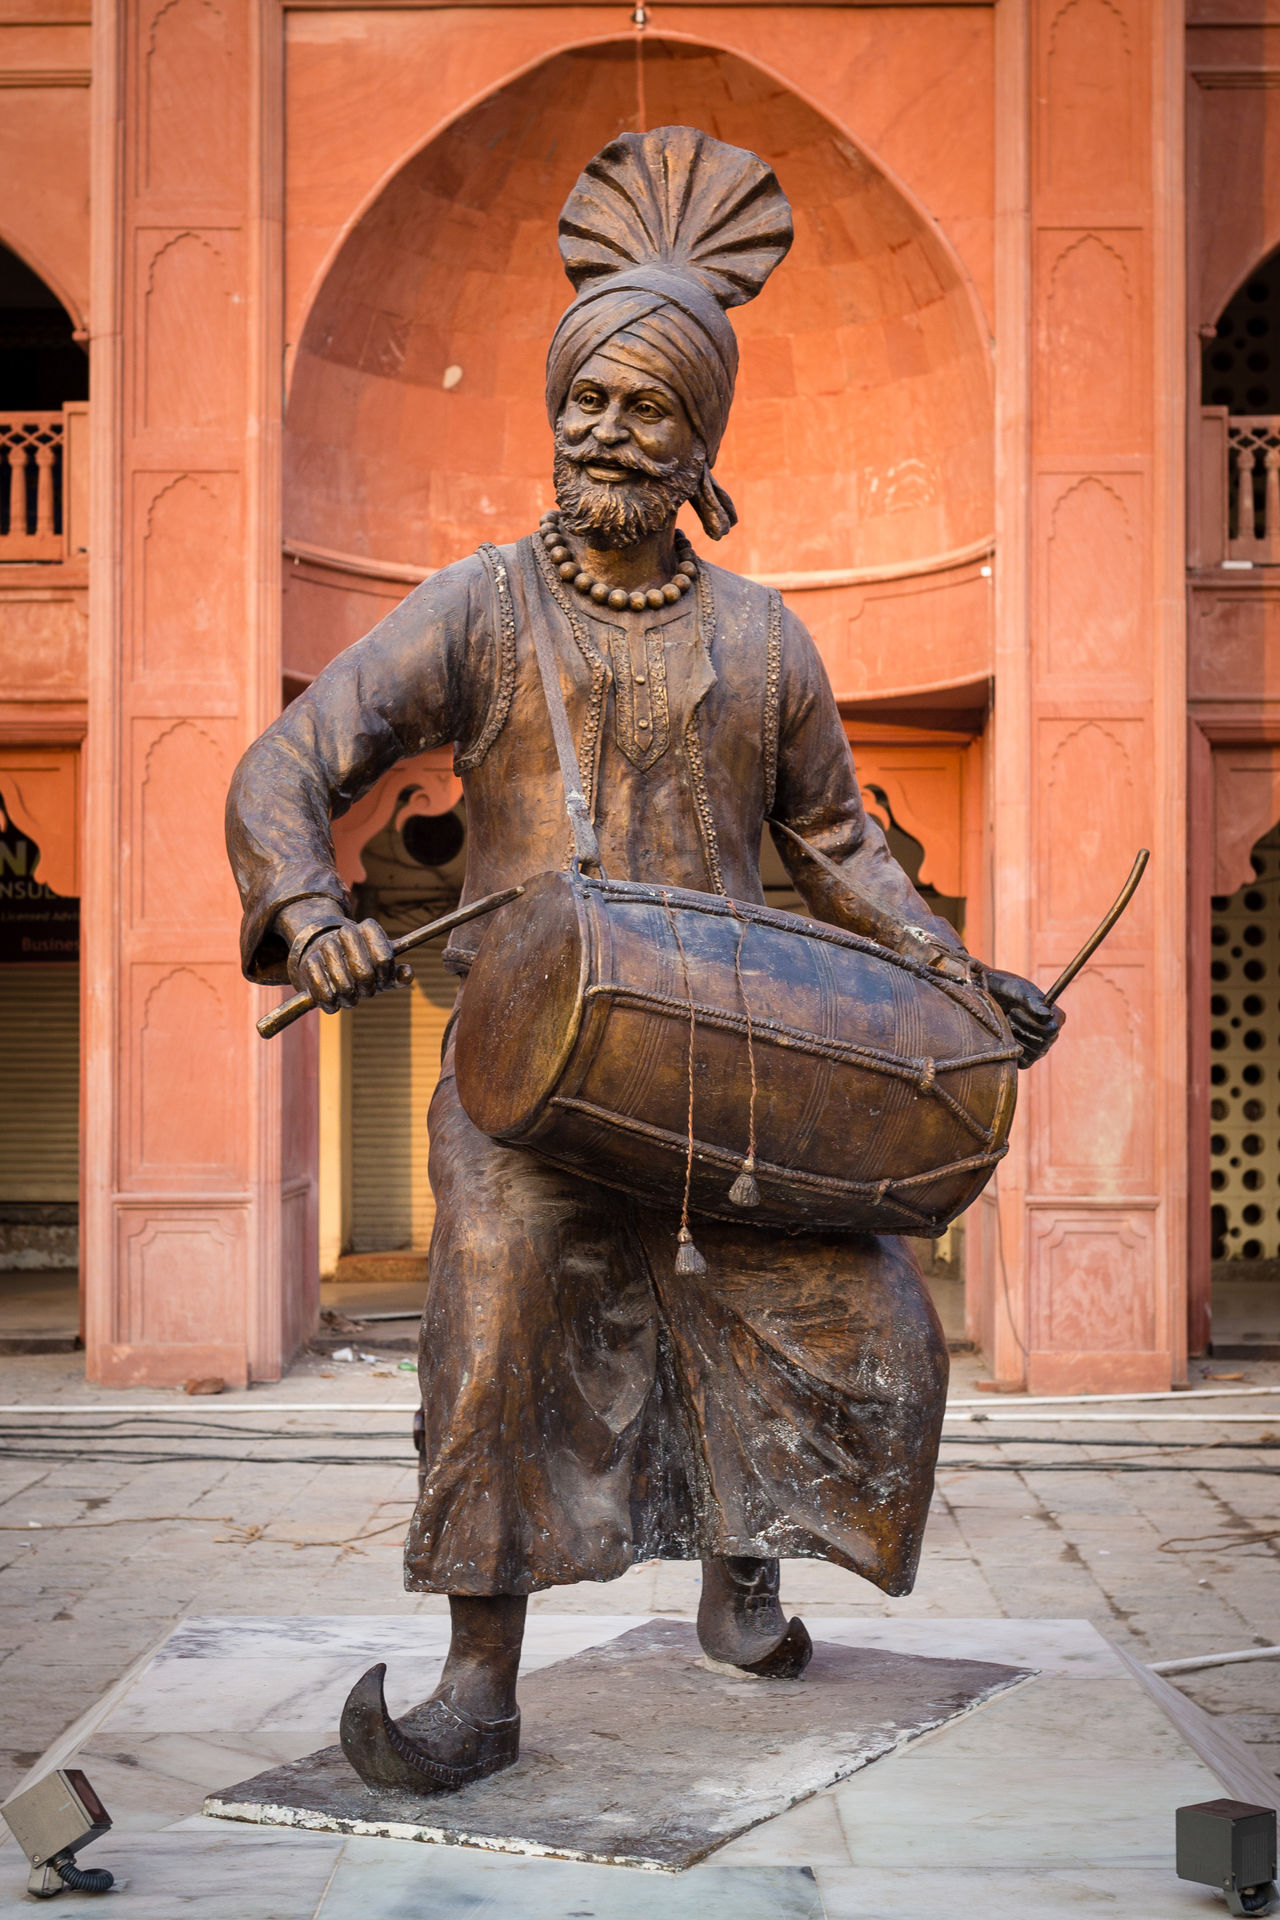 Statue of a Traditional Drummer in front of the Golden Temple, Amritsar, India Amritsar Drummer Drums Golden Golden Temple India Indian Indian Culture  Musician Outdoors Palace Punjab Punjabi Sculpture Statue Temple Traditional Traditional Clothing Traditional Culture